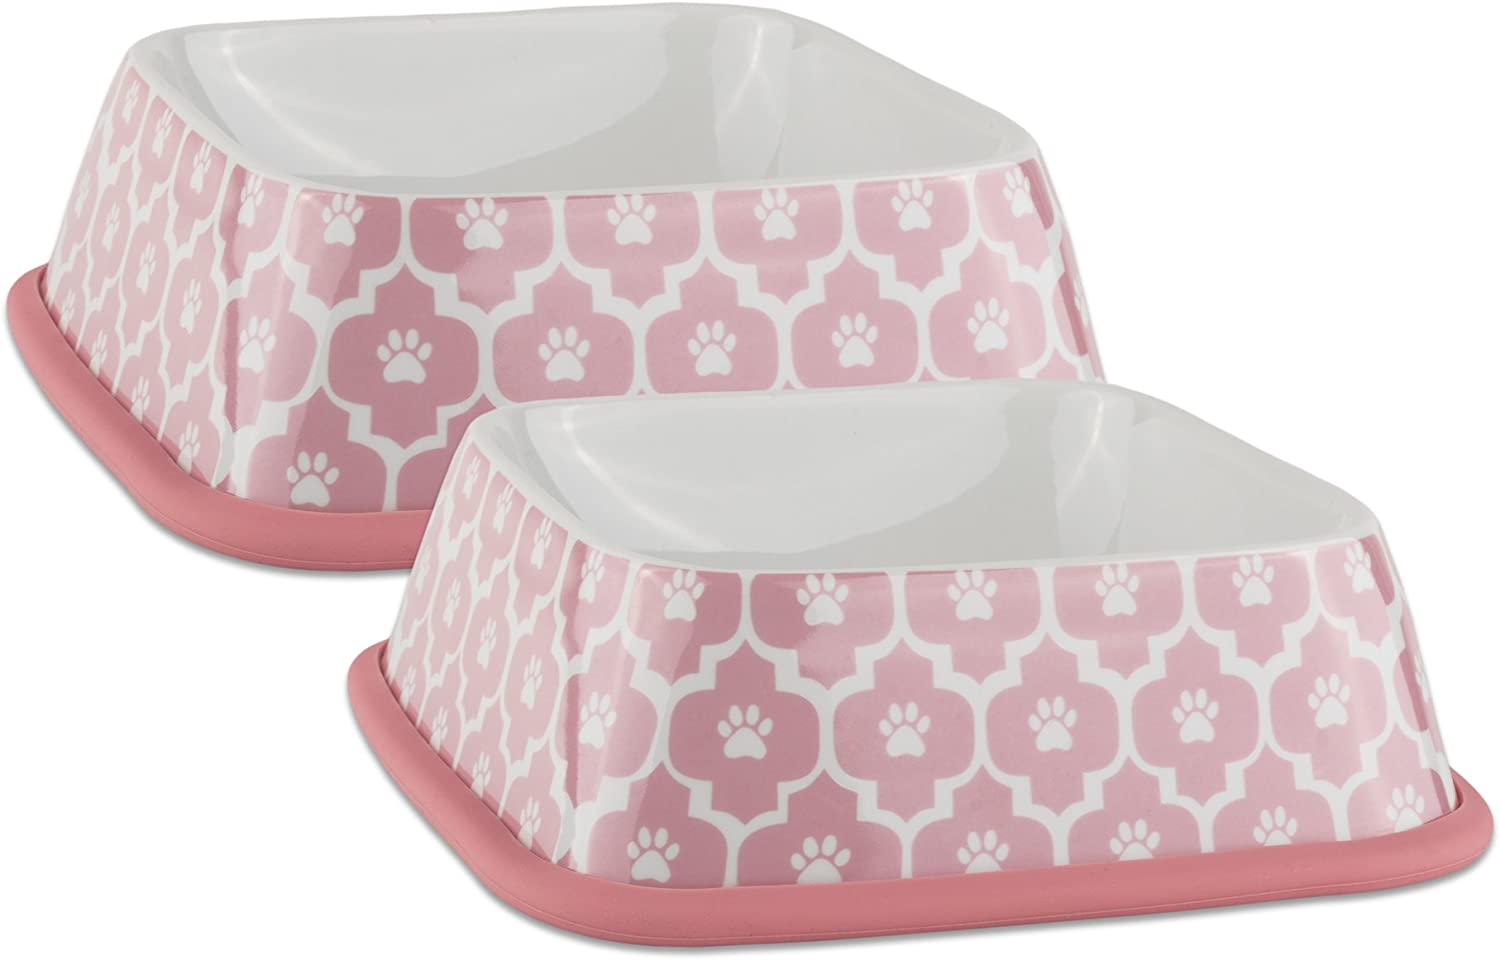 DII Bone Dry Lattice Square Ceramic Large Pet Bowl For Food & Water, 6.75  L x6.75  W x 2  H Set of 2, With NonSkid Silicone Rim for Dogs and CatsPink Sorbet